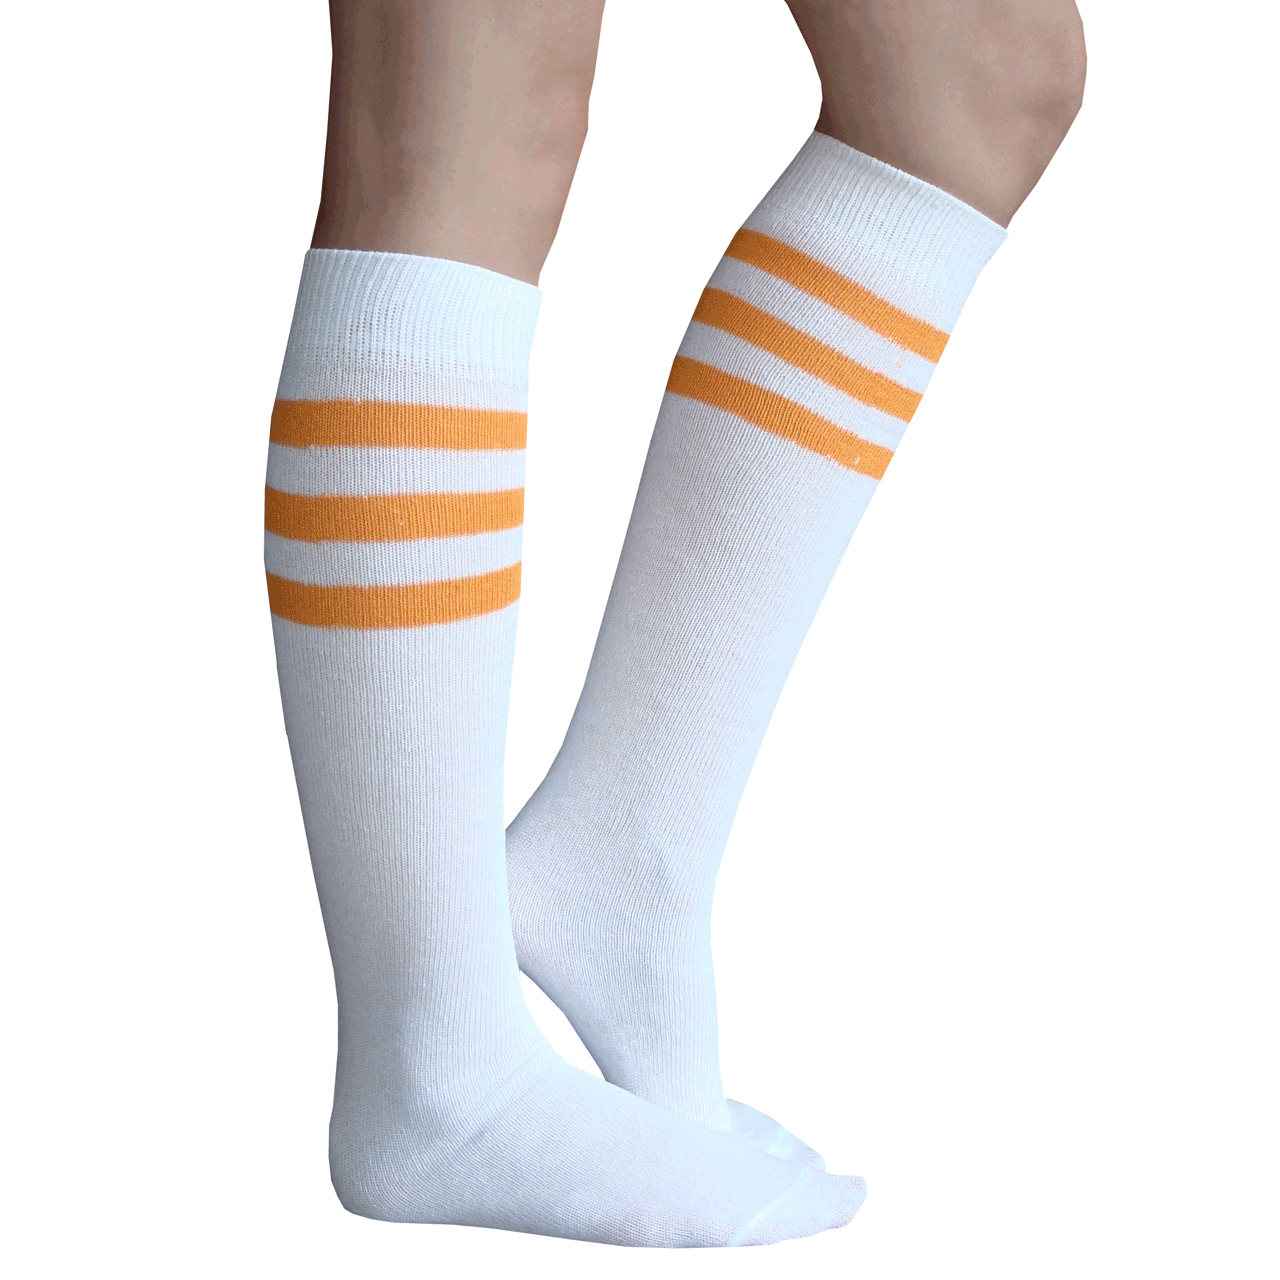 284423a0317 white socks with tangerine striped. See 1 more picture